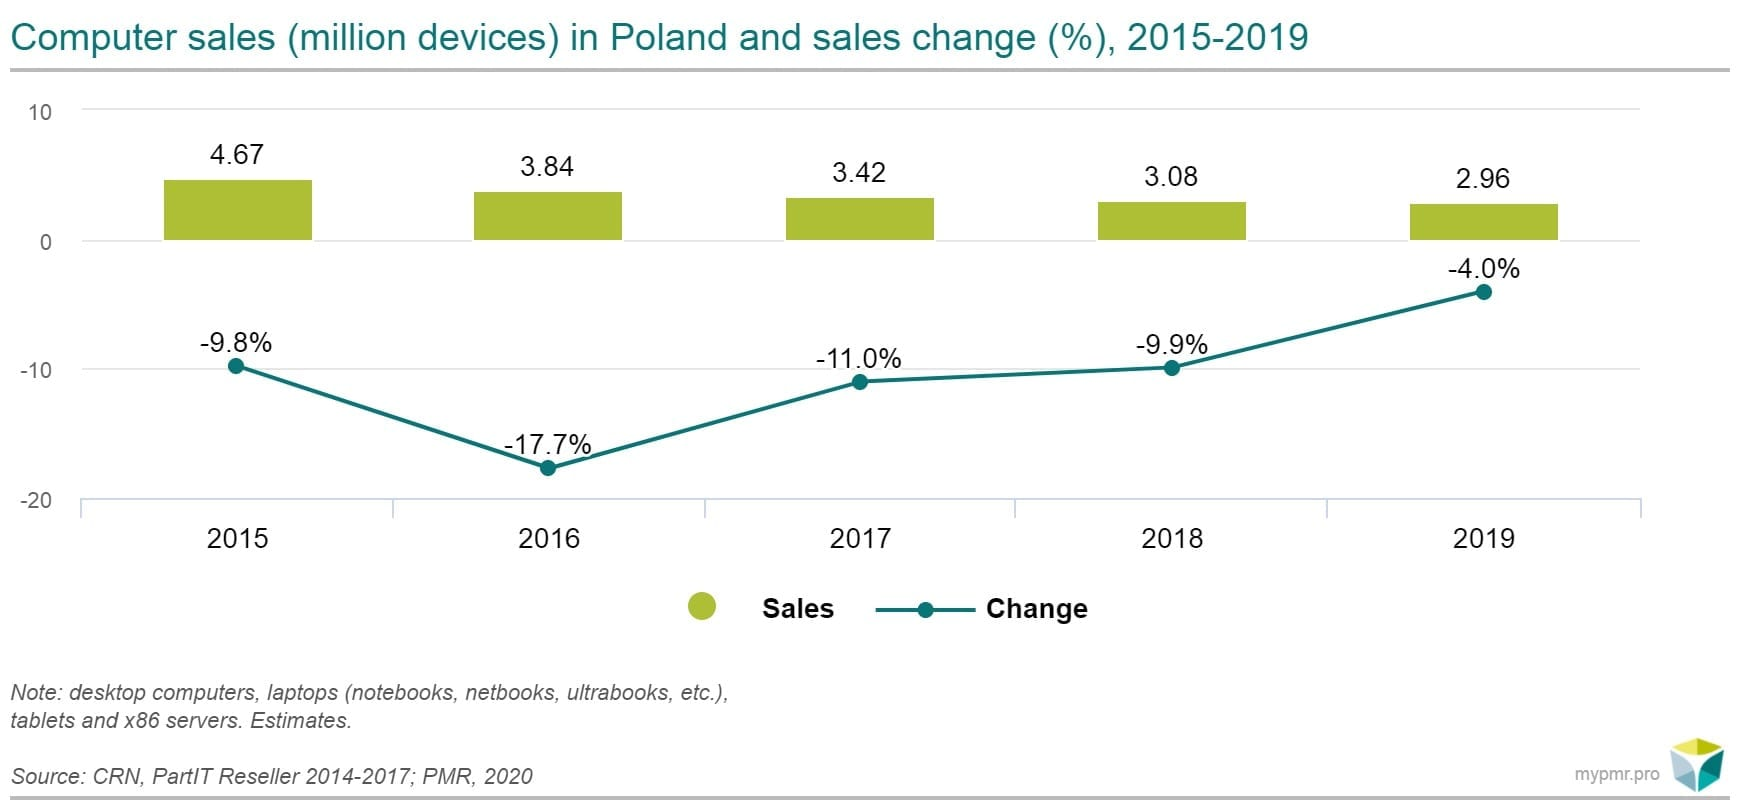 Computer-sales-in-Poland